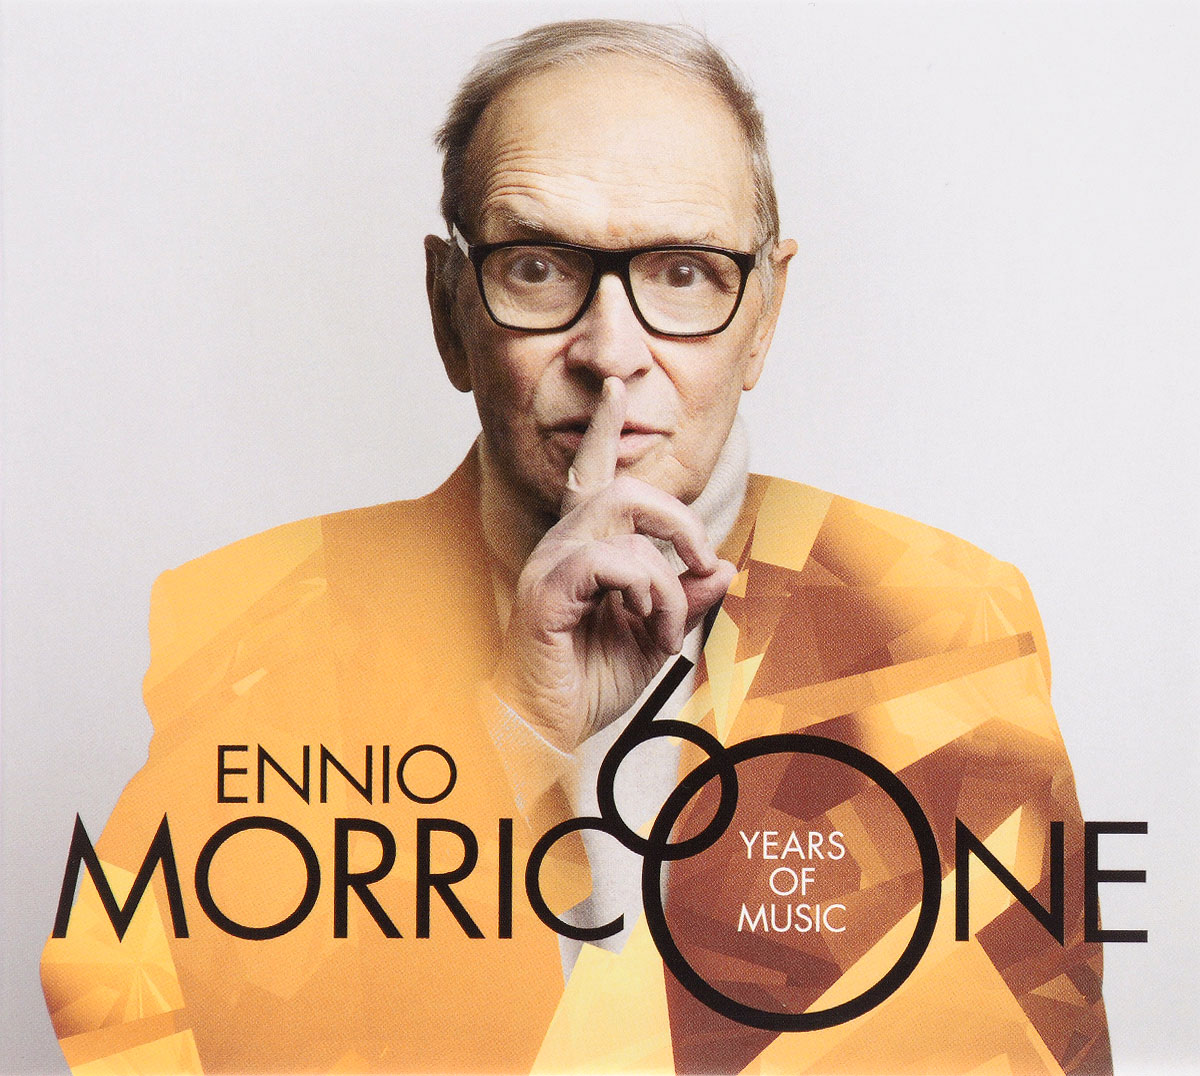 Эннио Морриконе Ennio Morricone. Morricone 60 Years Of Music эннио морриконе ennio morricone morricone 60 years of music